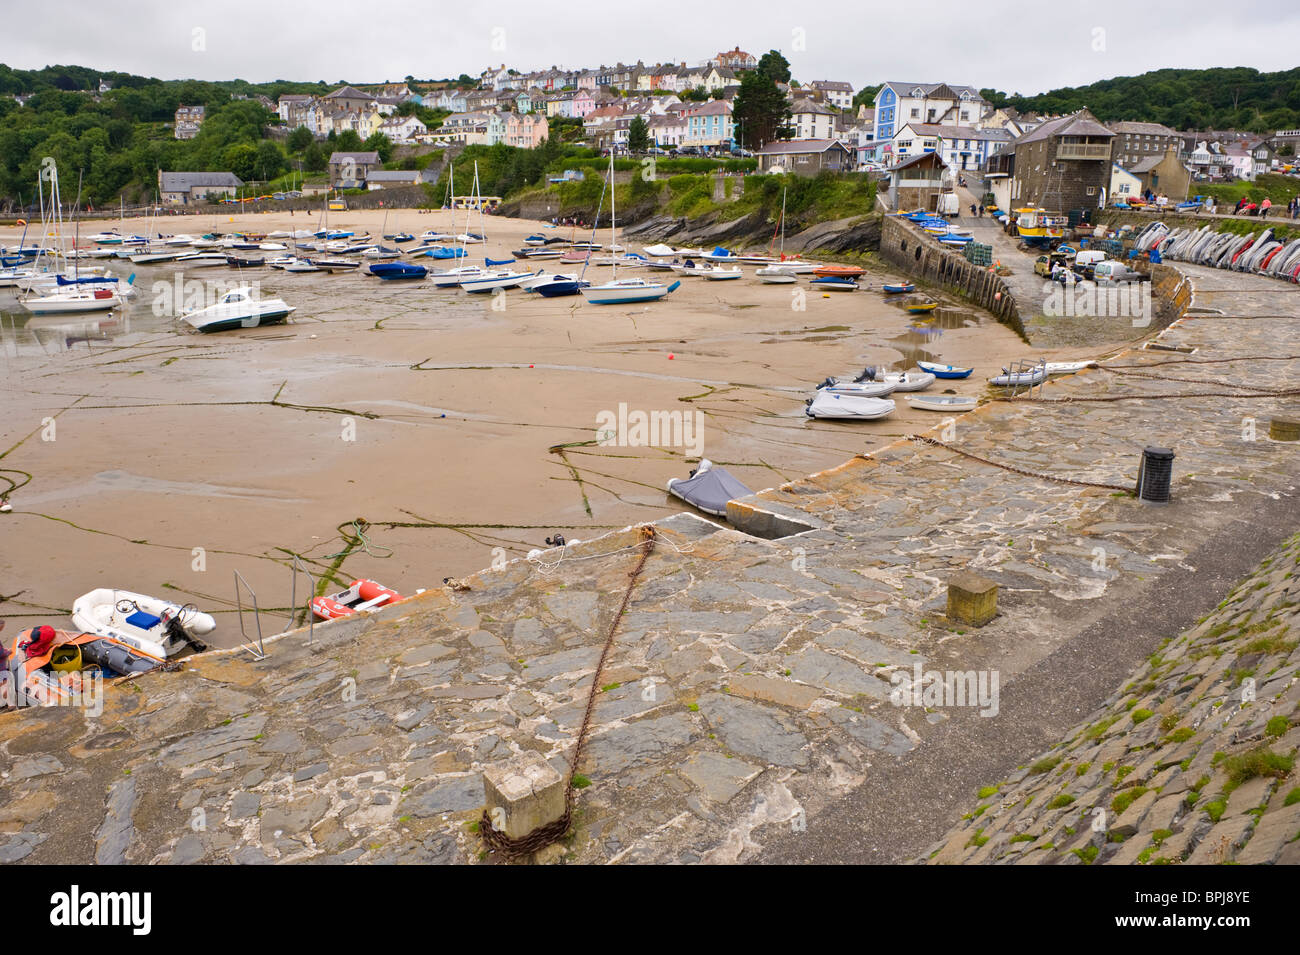 View over harbour at the seaside holiday resort of New Quay Ceredigion West Wales UK - Stock Image